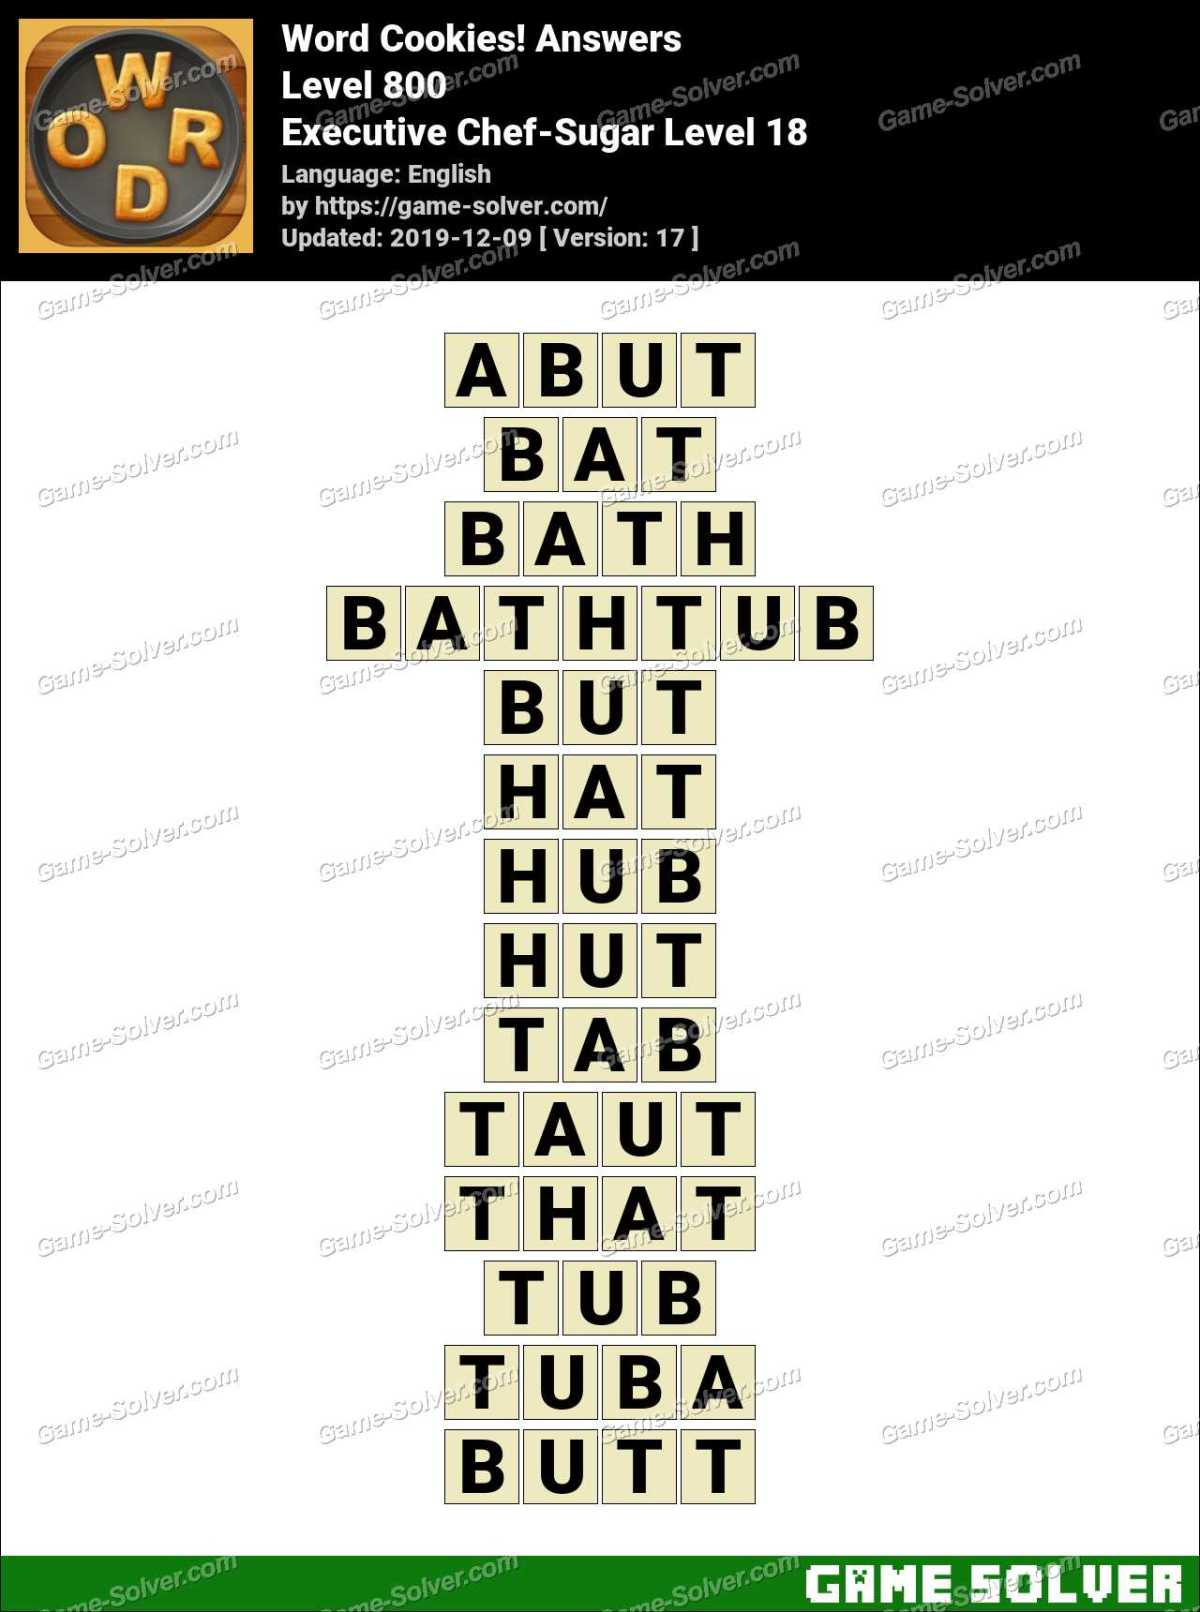 Word Cookies Executive Chef-Sugar Level 18 Answers